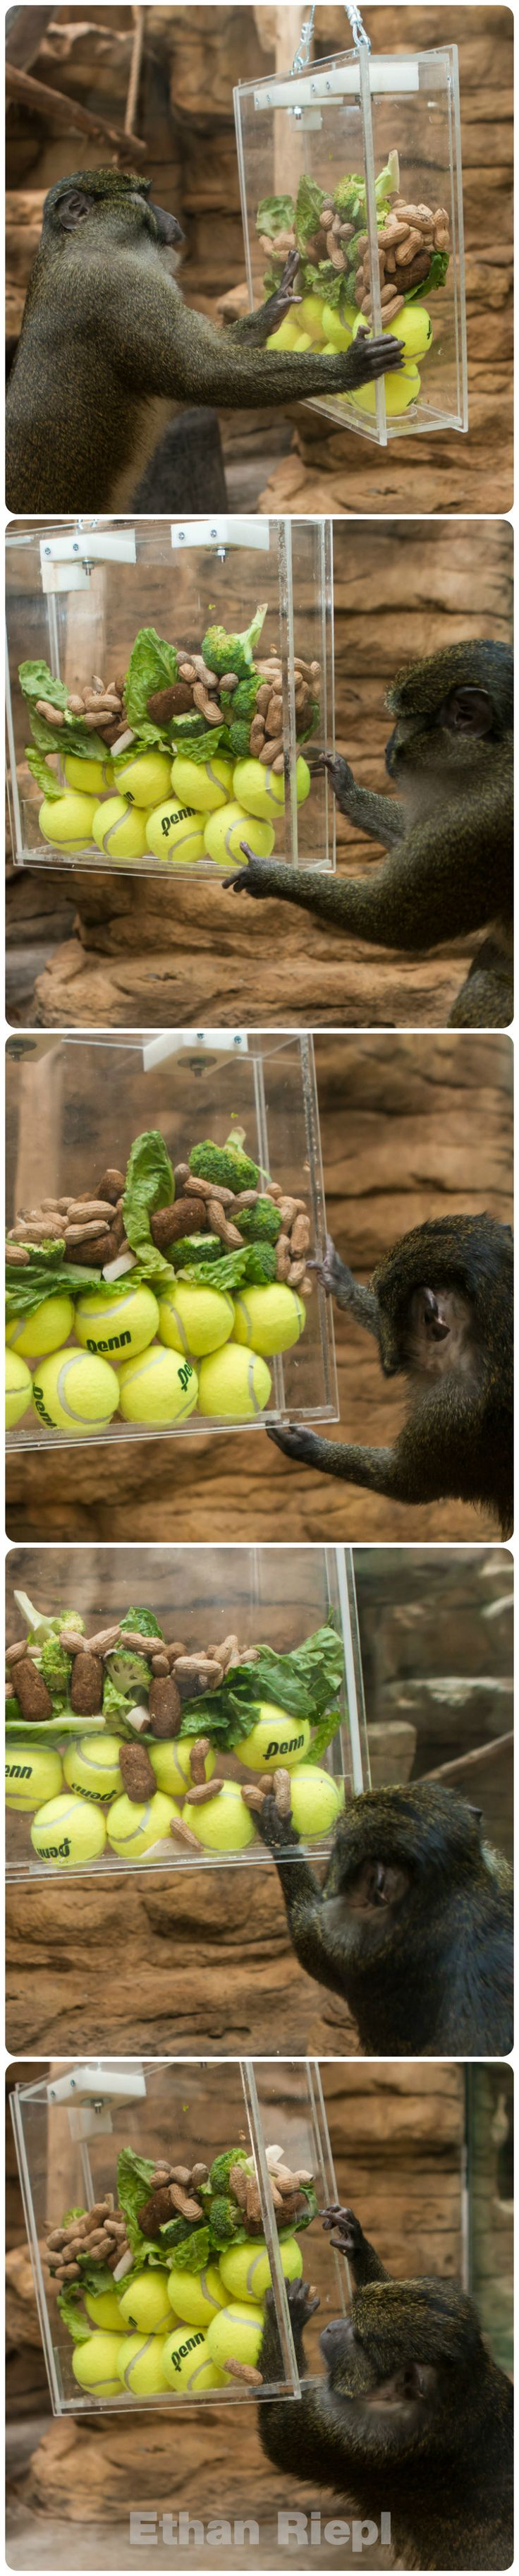 Tennis Ball Feeder for Swamp Monkeys at Saint Louis Zoo. Such a fun idea with a Great picture where you can really see how it fits together. I would put a hinge and locks at the bottom for easier cleaning however.